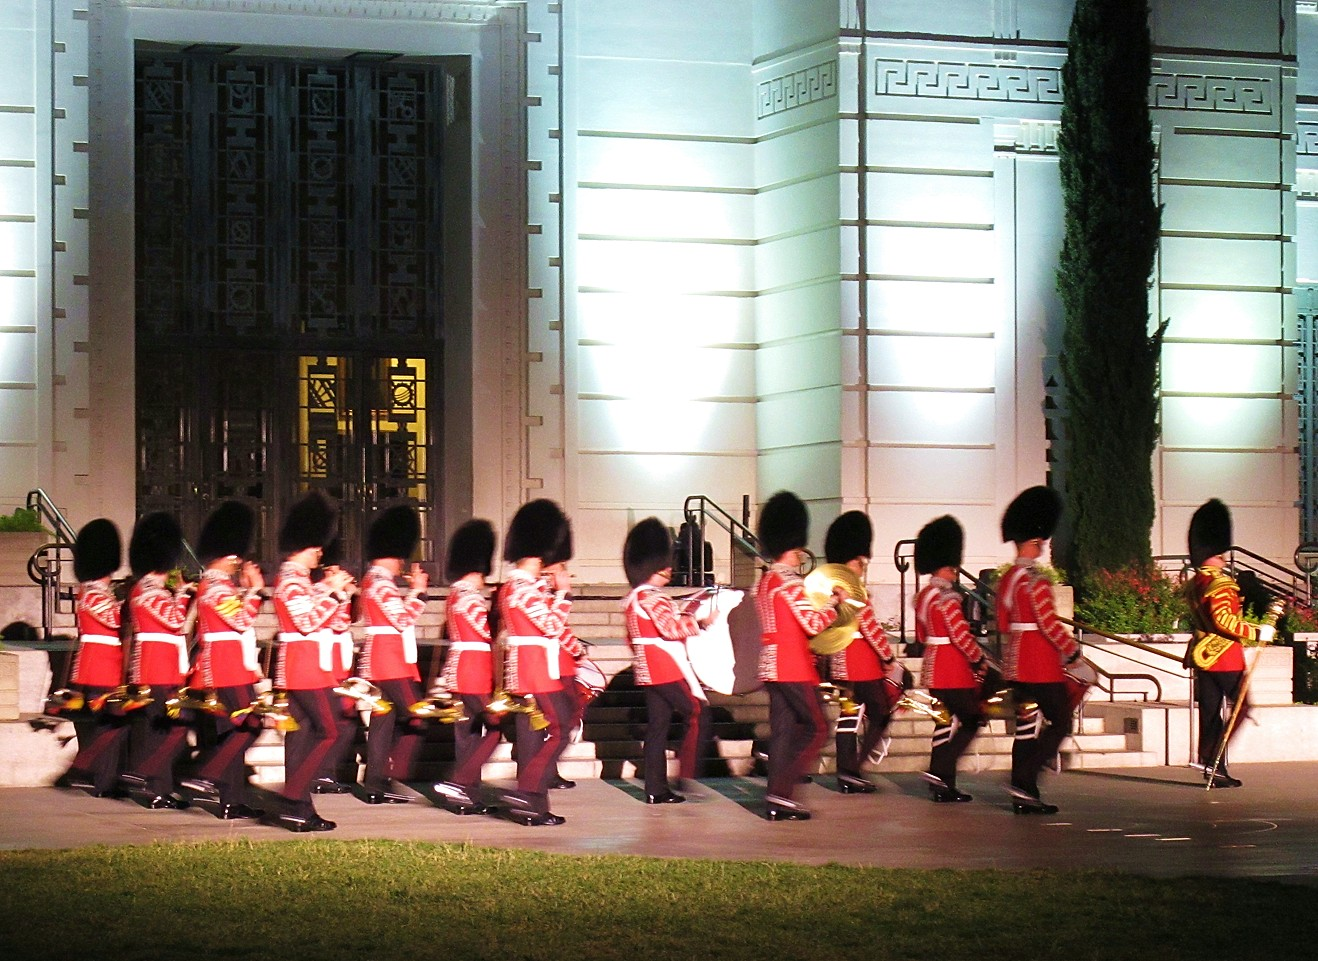 Burberry London in Los Angeles, Royal guard